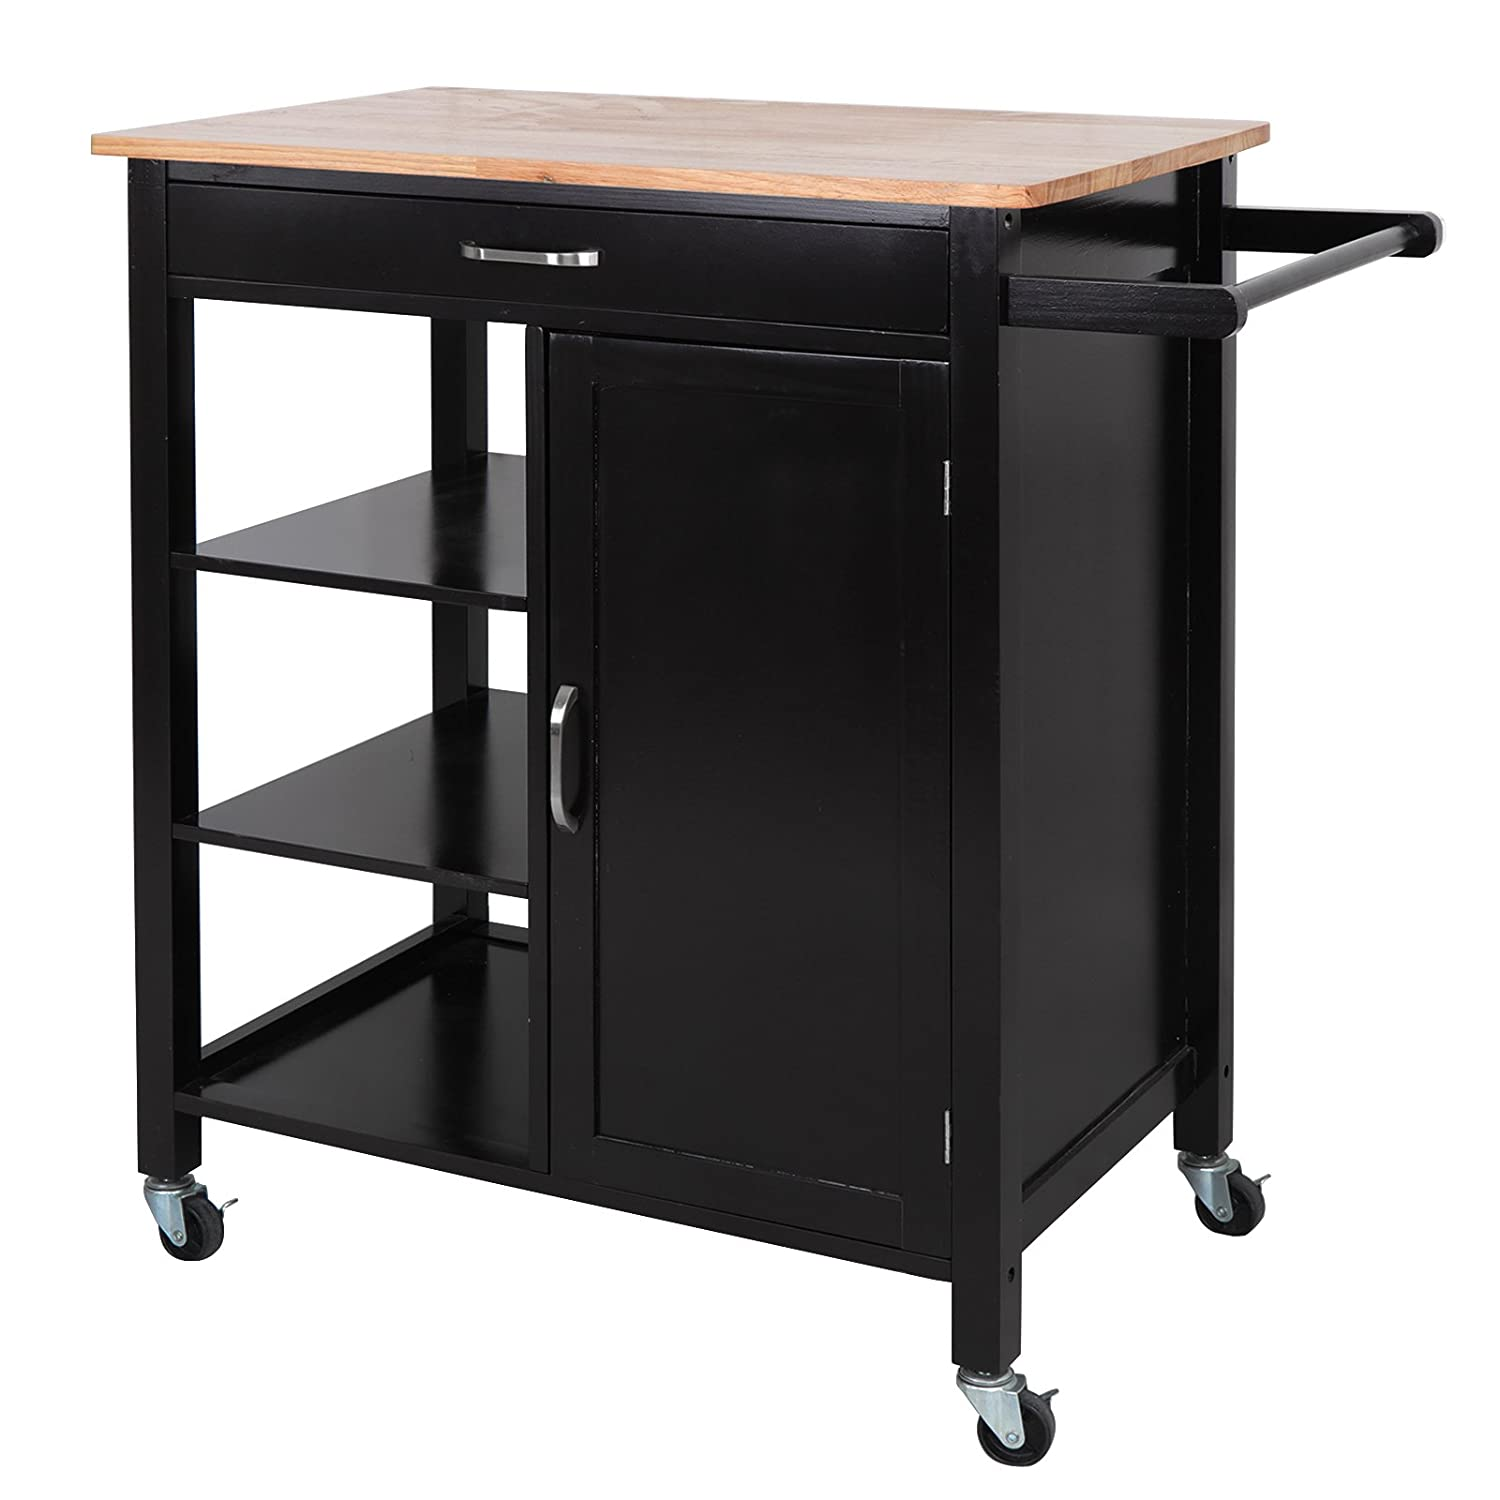 Awesome Zeny 4 Tier Rolling Kitchen Island Storage Trolley Cart Cabinet Utility W Towel Bar Drawer Rubber Wood Top Kitchen Cart Home Remodeling Inspirations Propsscottssportslandcom